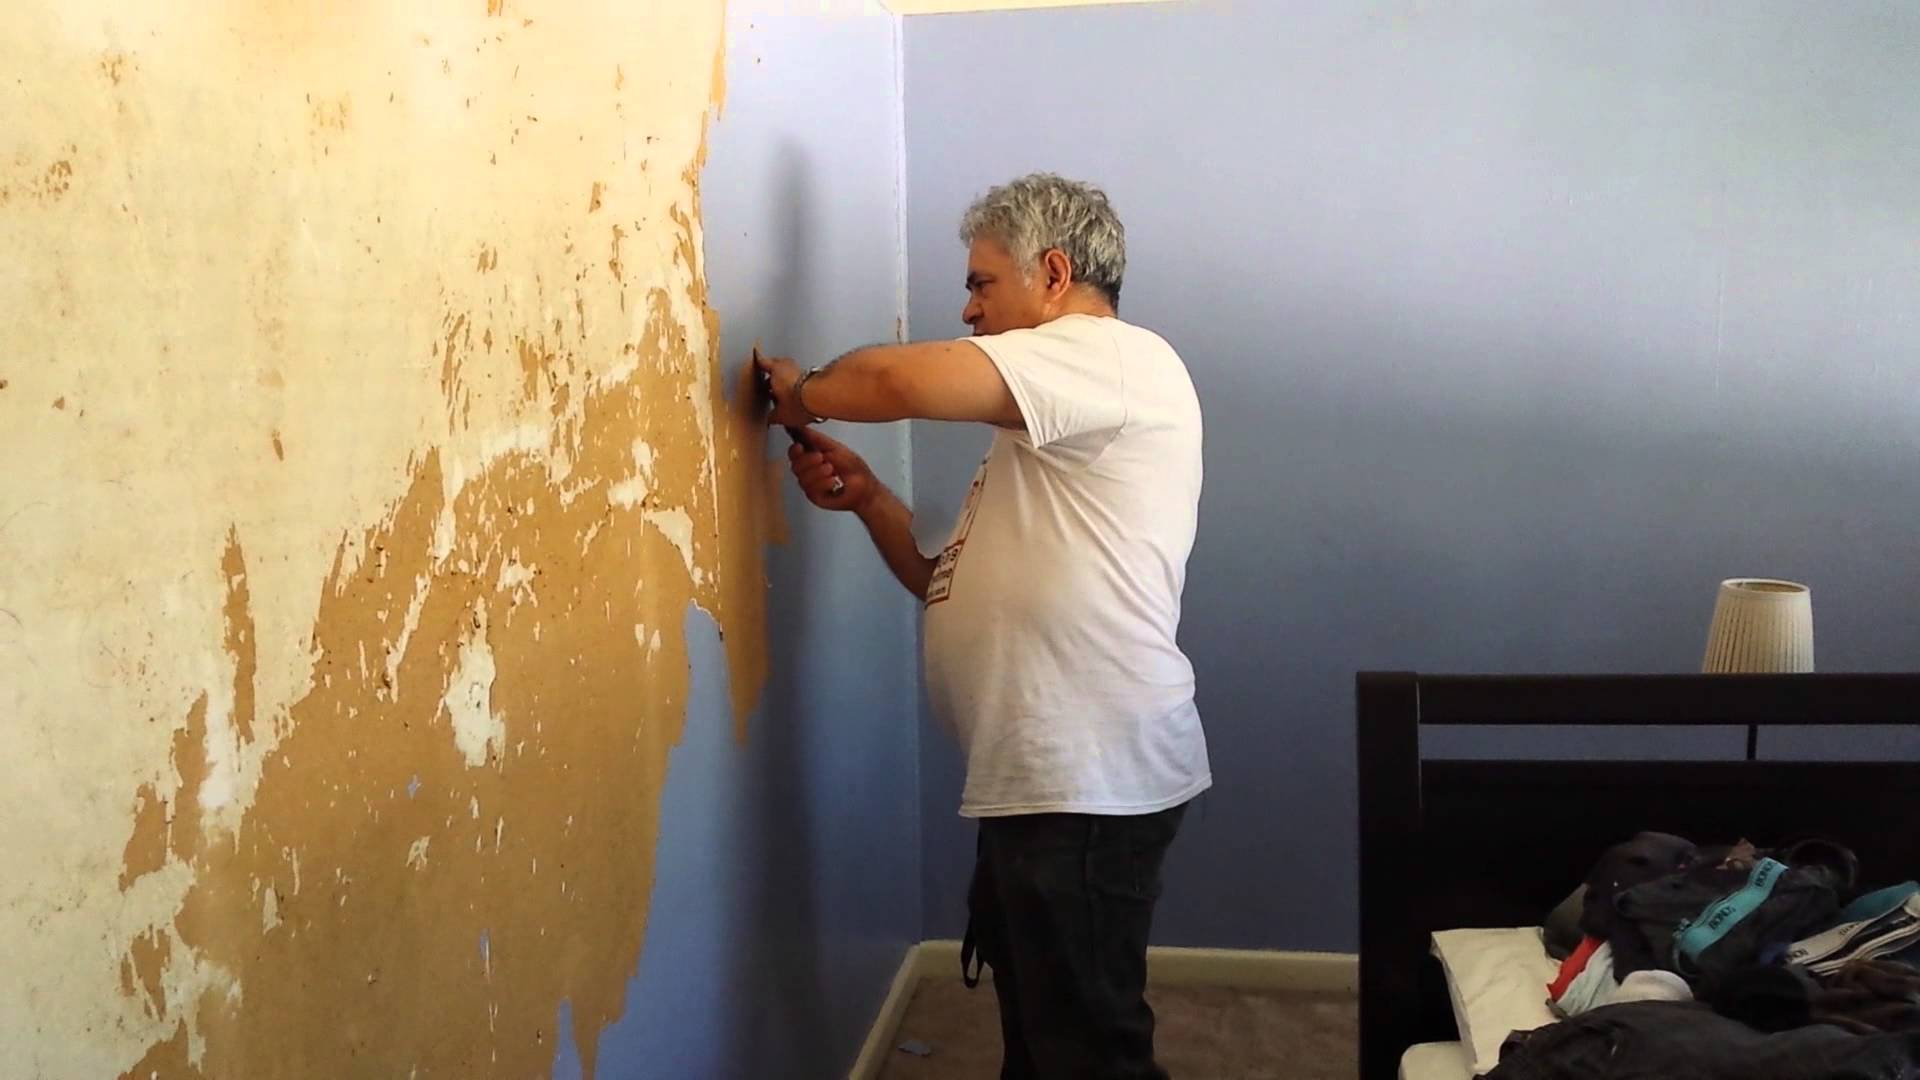 How to remove wallpaper that was painted over Wallpaper removal 1920x1080